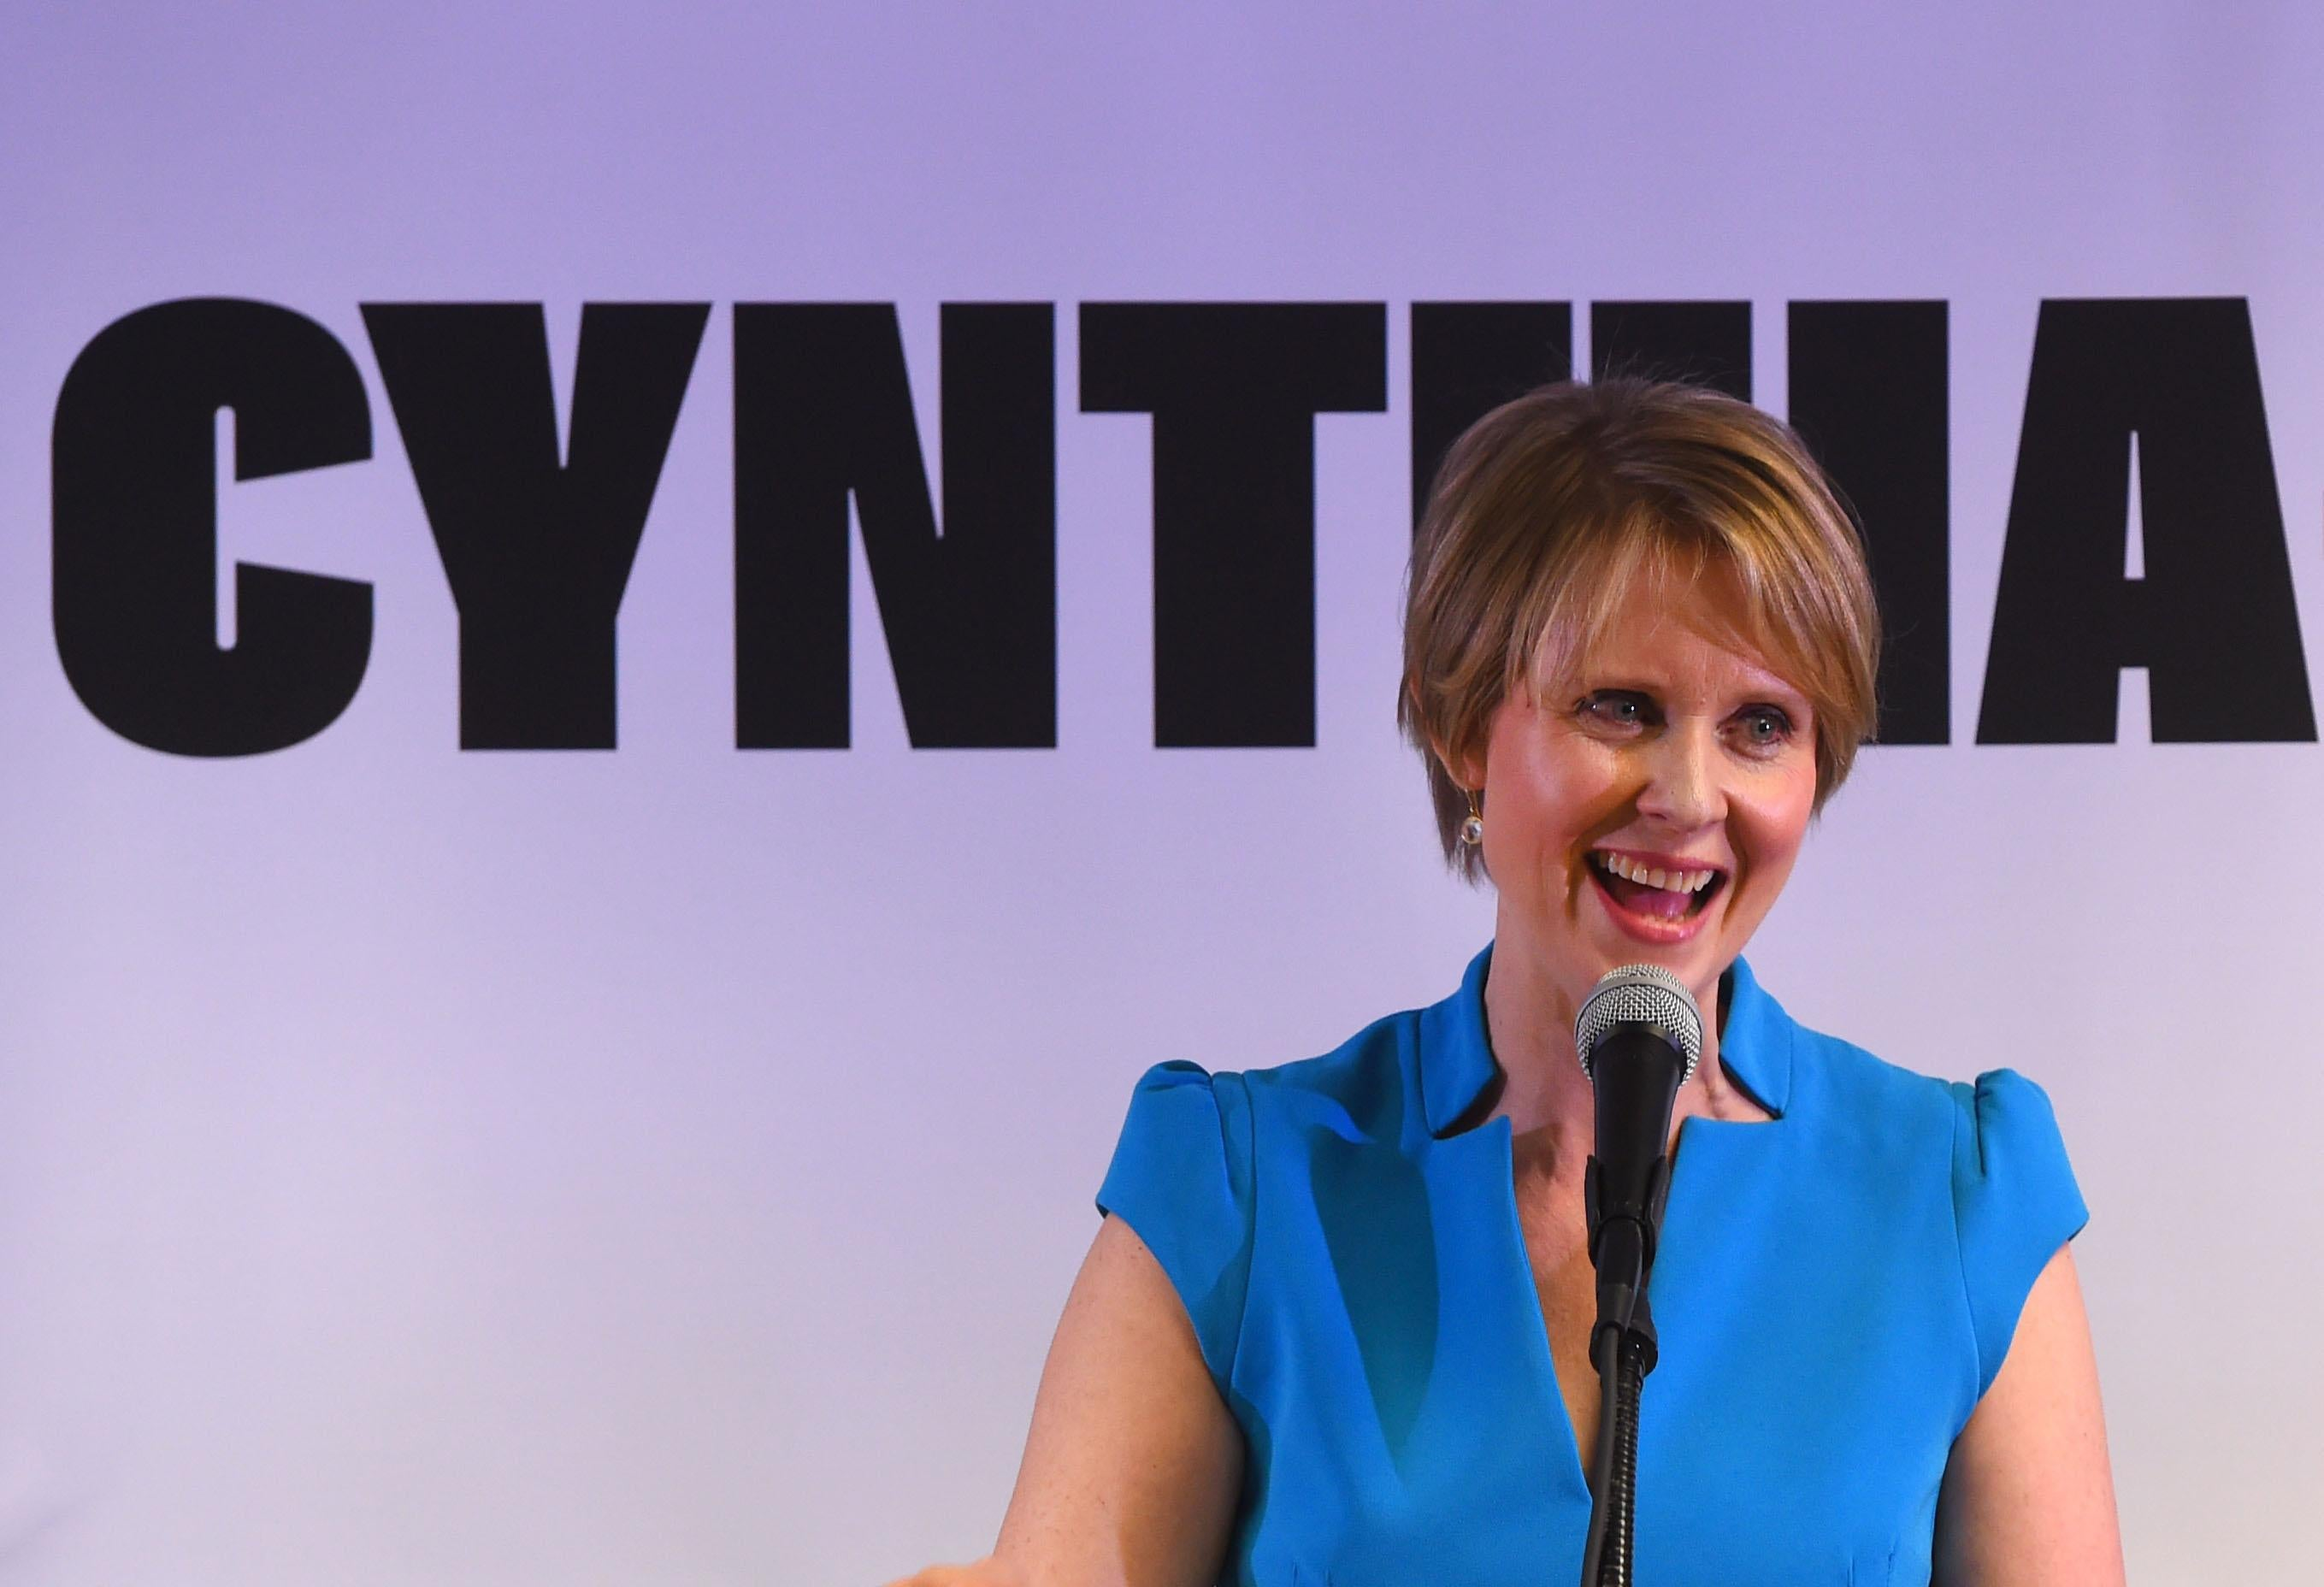 Former Sex and the City star Cynthia Nixon speaks to people at the Bethesda Healing Center in  Brooklyn, New York on March 20, 2018 at her first event since announcing that shes running for governor of New York.         Cynthia Nixon, the US actress who shot to fame as workaholic lawyer Miranda on 'Sex and the City,' jumped into the race for New York governor March 19, 2018, unveiling a progressive platform championing economic equality and eschewing big business.The 51-year-old declared her candidacy with a two-minute campaign video posted on Twitter that showed her at home with her wife and children, riding the subway, taking one of her children to school and speaking at liberal political causes.          / AFP PHOTO / TIMOTHY A. CLARY        (Photo credit should read TIMOTHY A. CLARY/AFP/Getty Images)